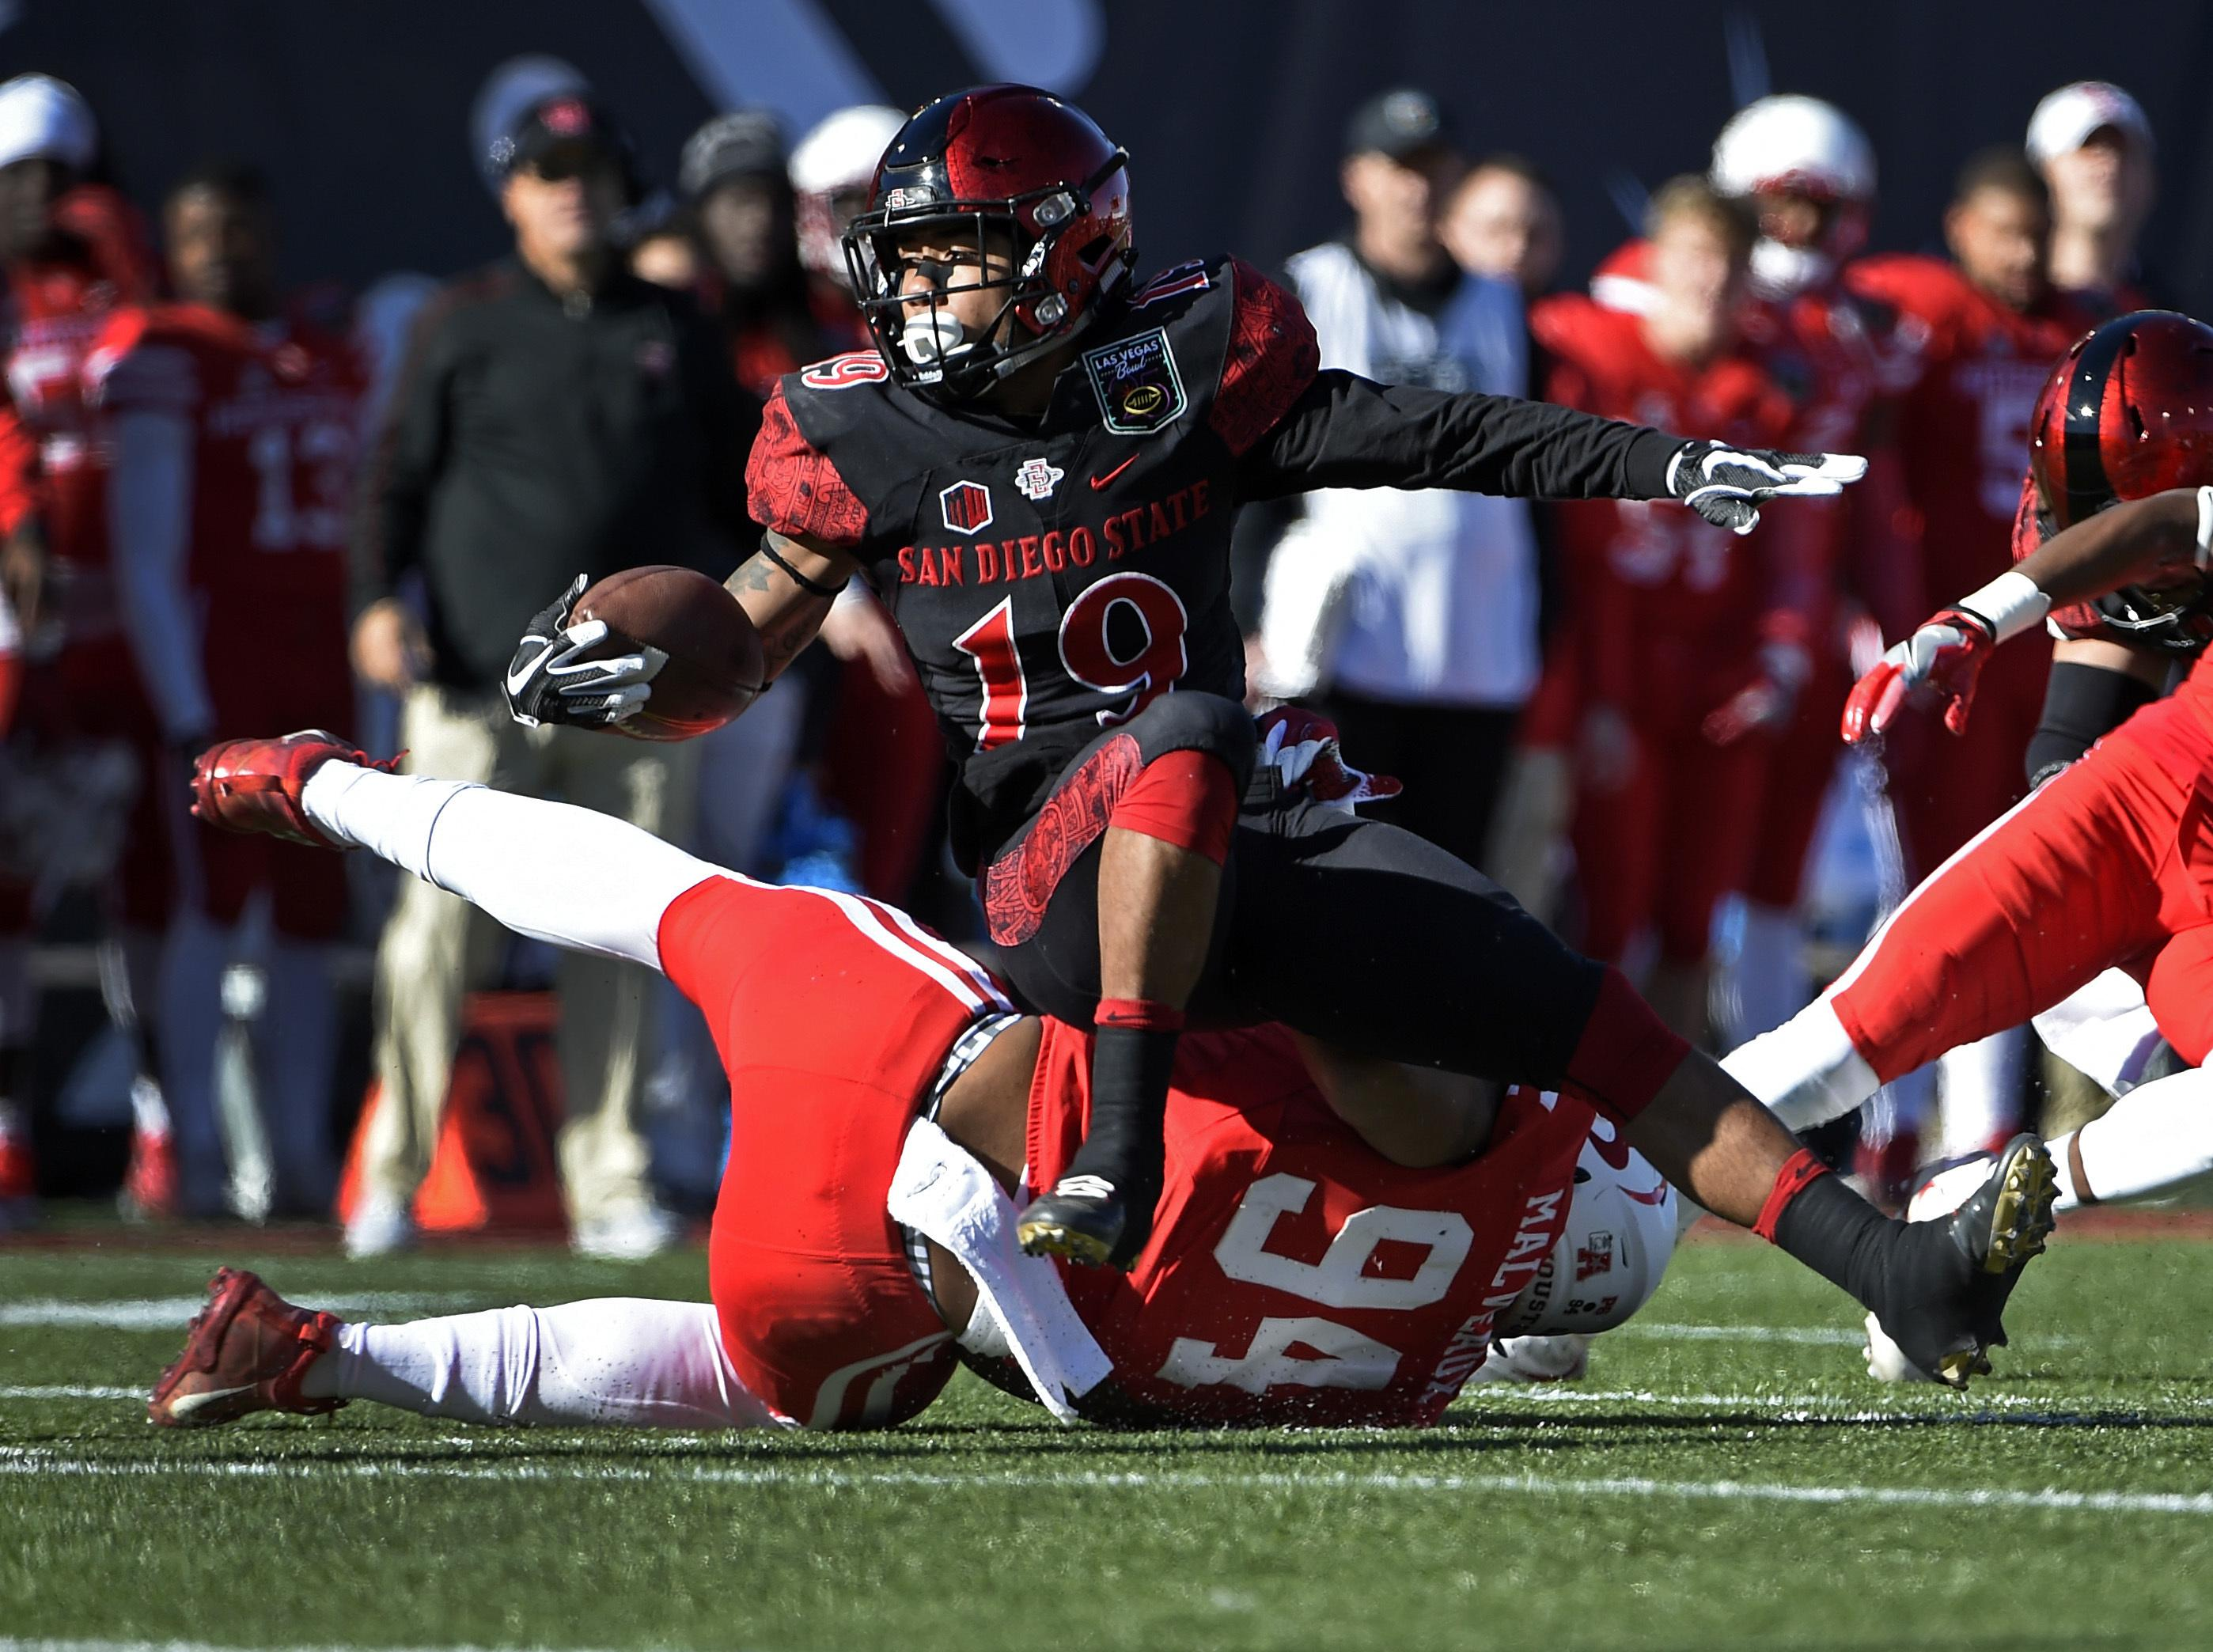 Donnell Pumphrey Breaks Ncaa Record To Guide Sdsu To Win In Las